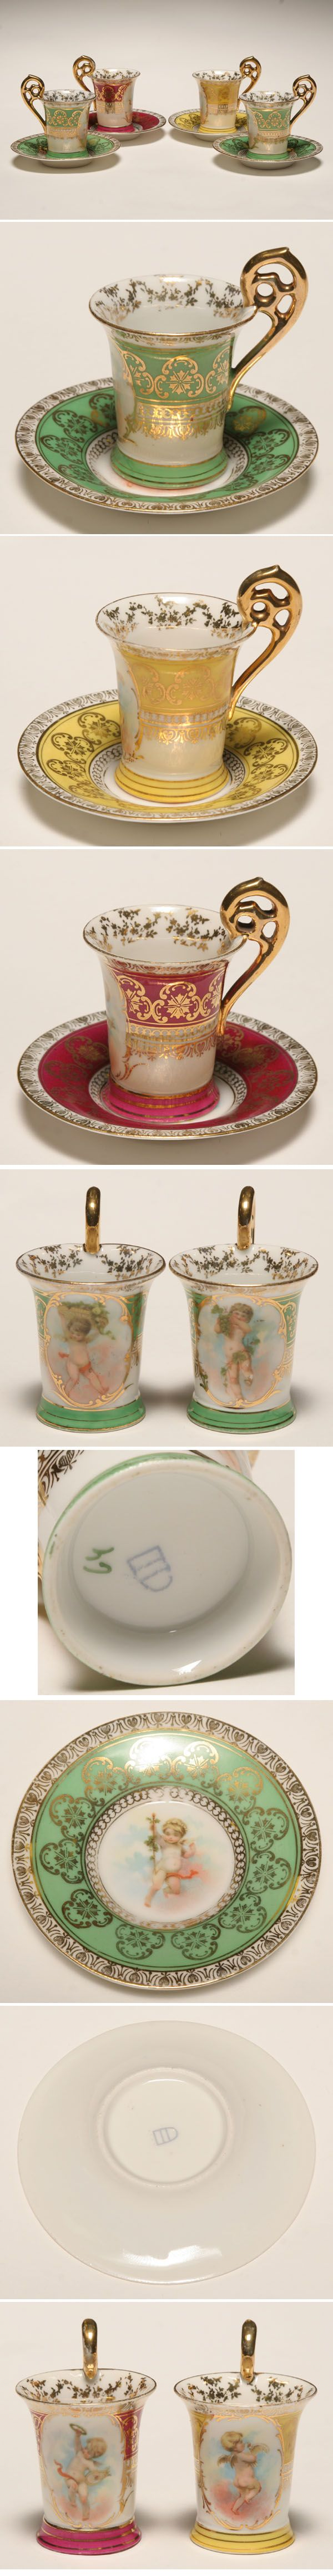 Royal Vienna porcelain demitasse cups and saucers; hand touched transferware with gilt accents . Beehive mark on bases.